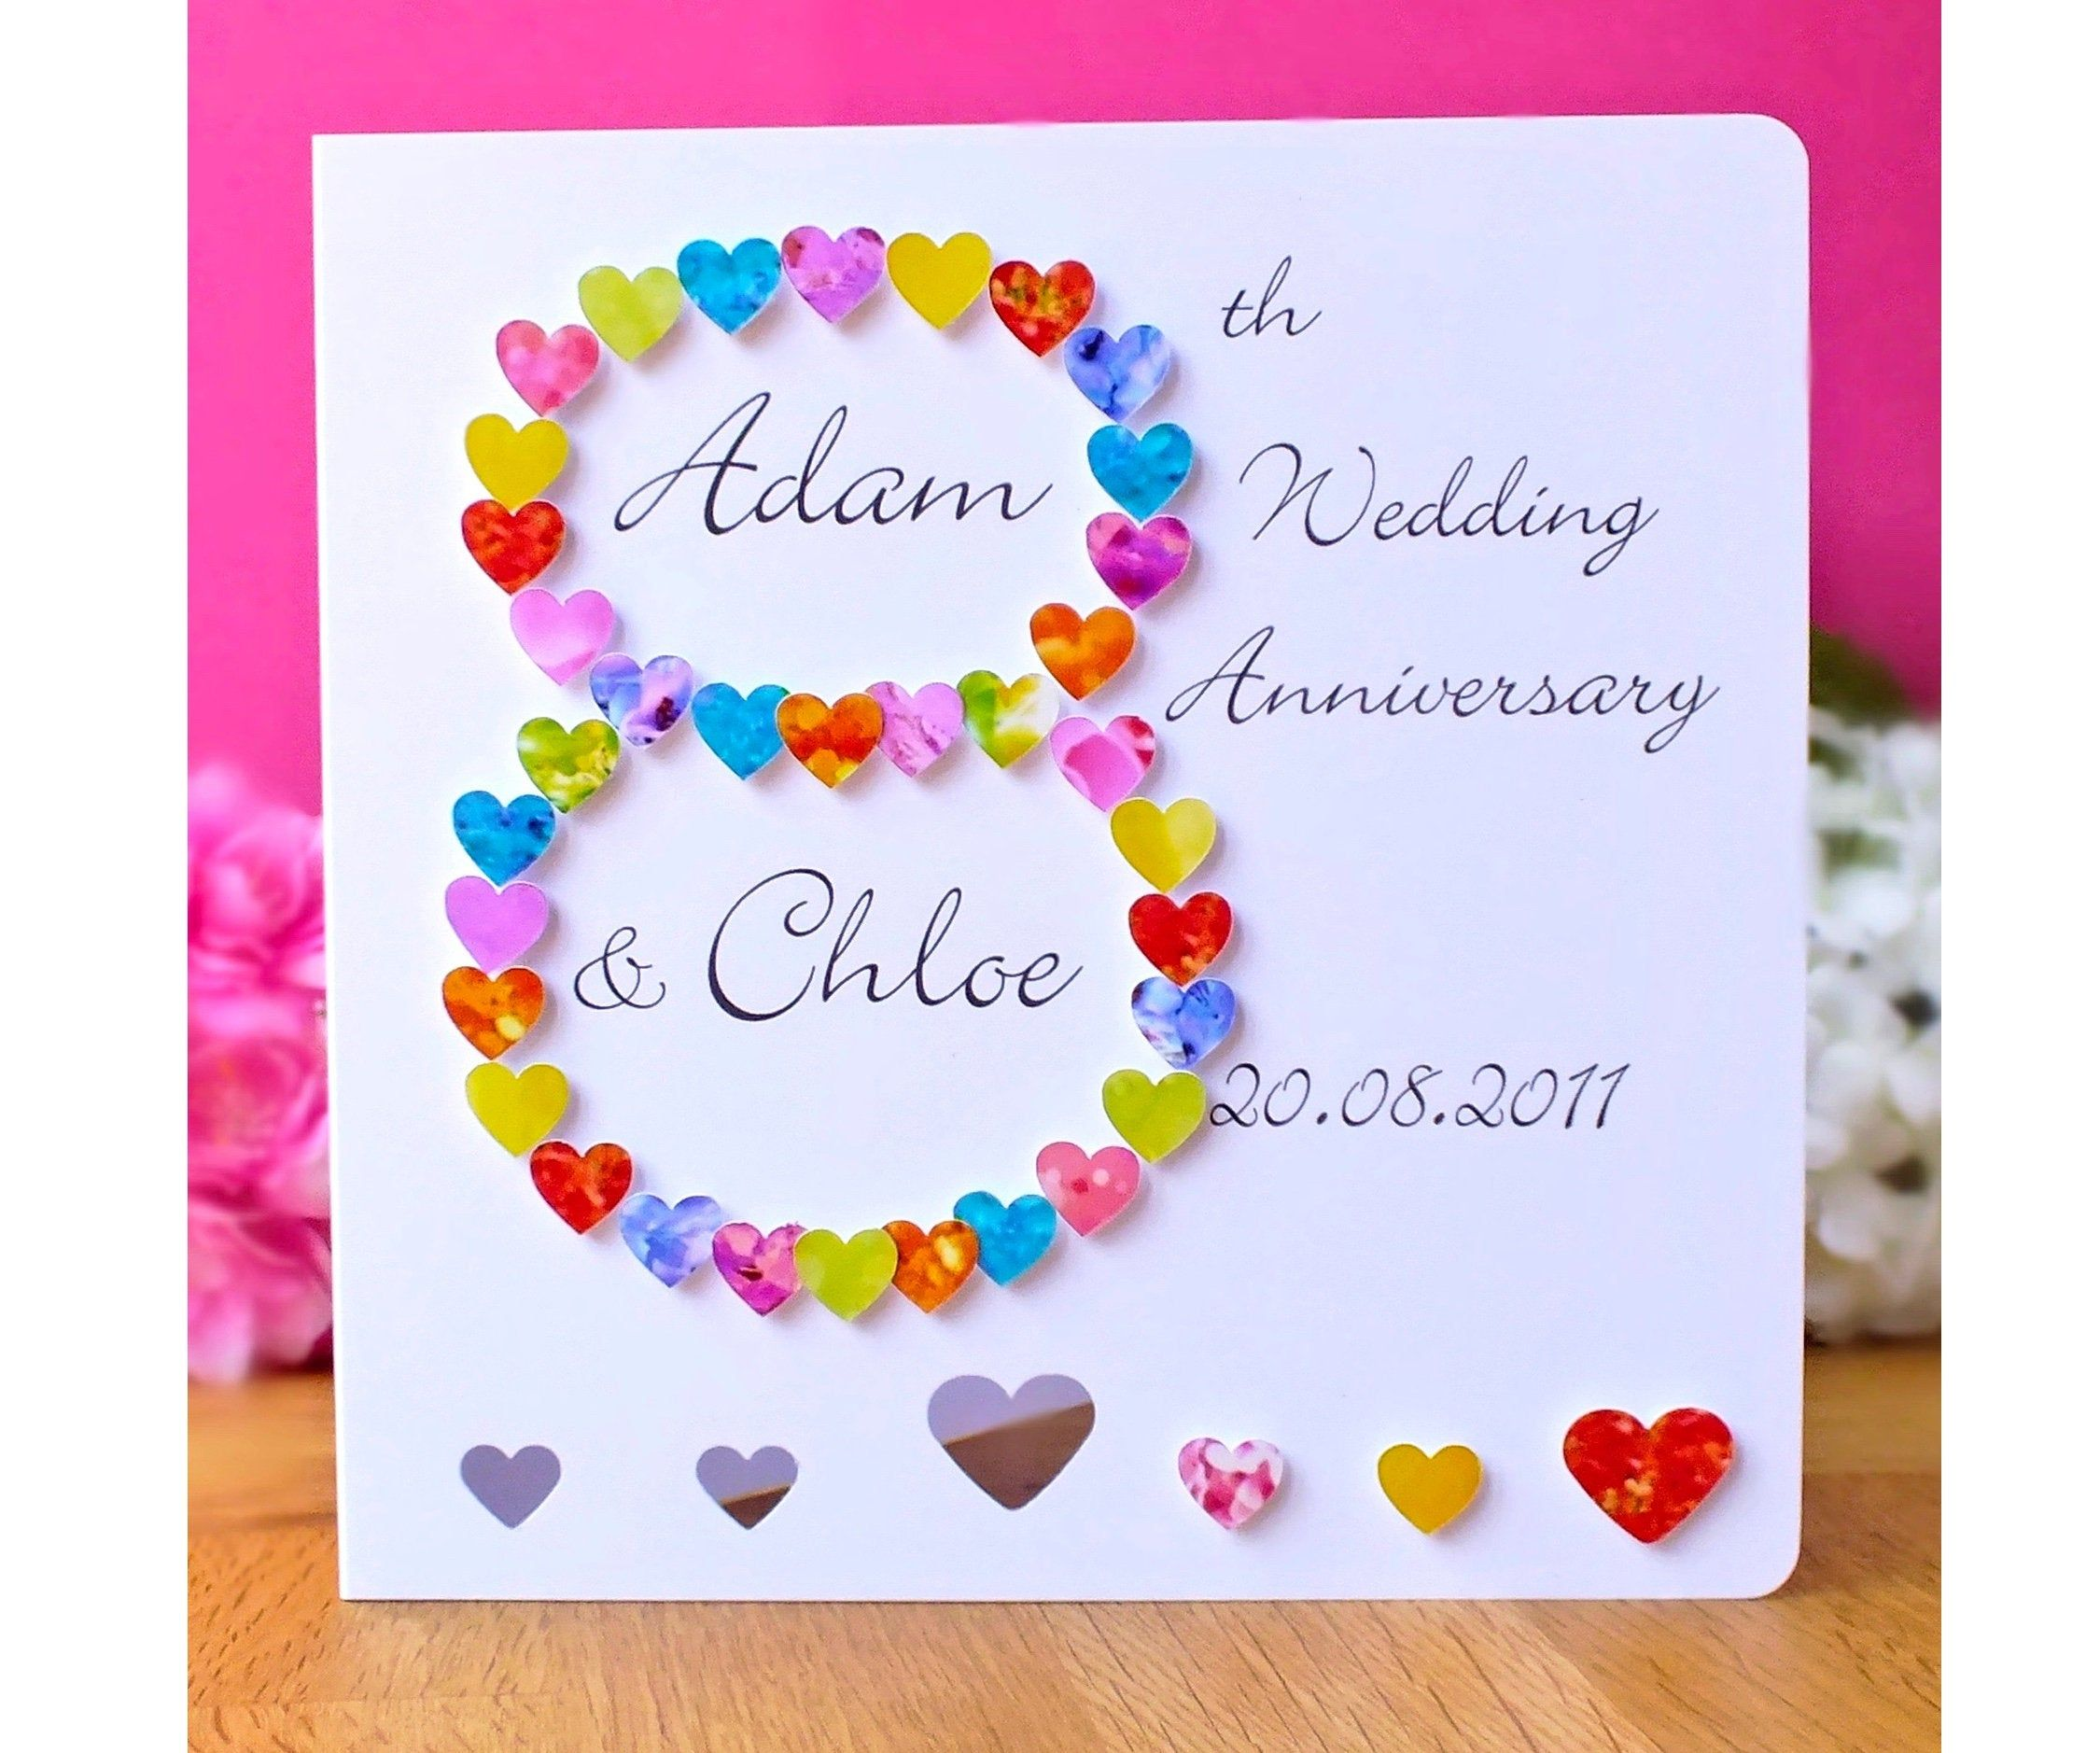 8 Year Anniversary Quotes Quotesgram 8 Year Anniversary Gift 8 Year Anniversary Year Anniversary Gifts